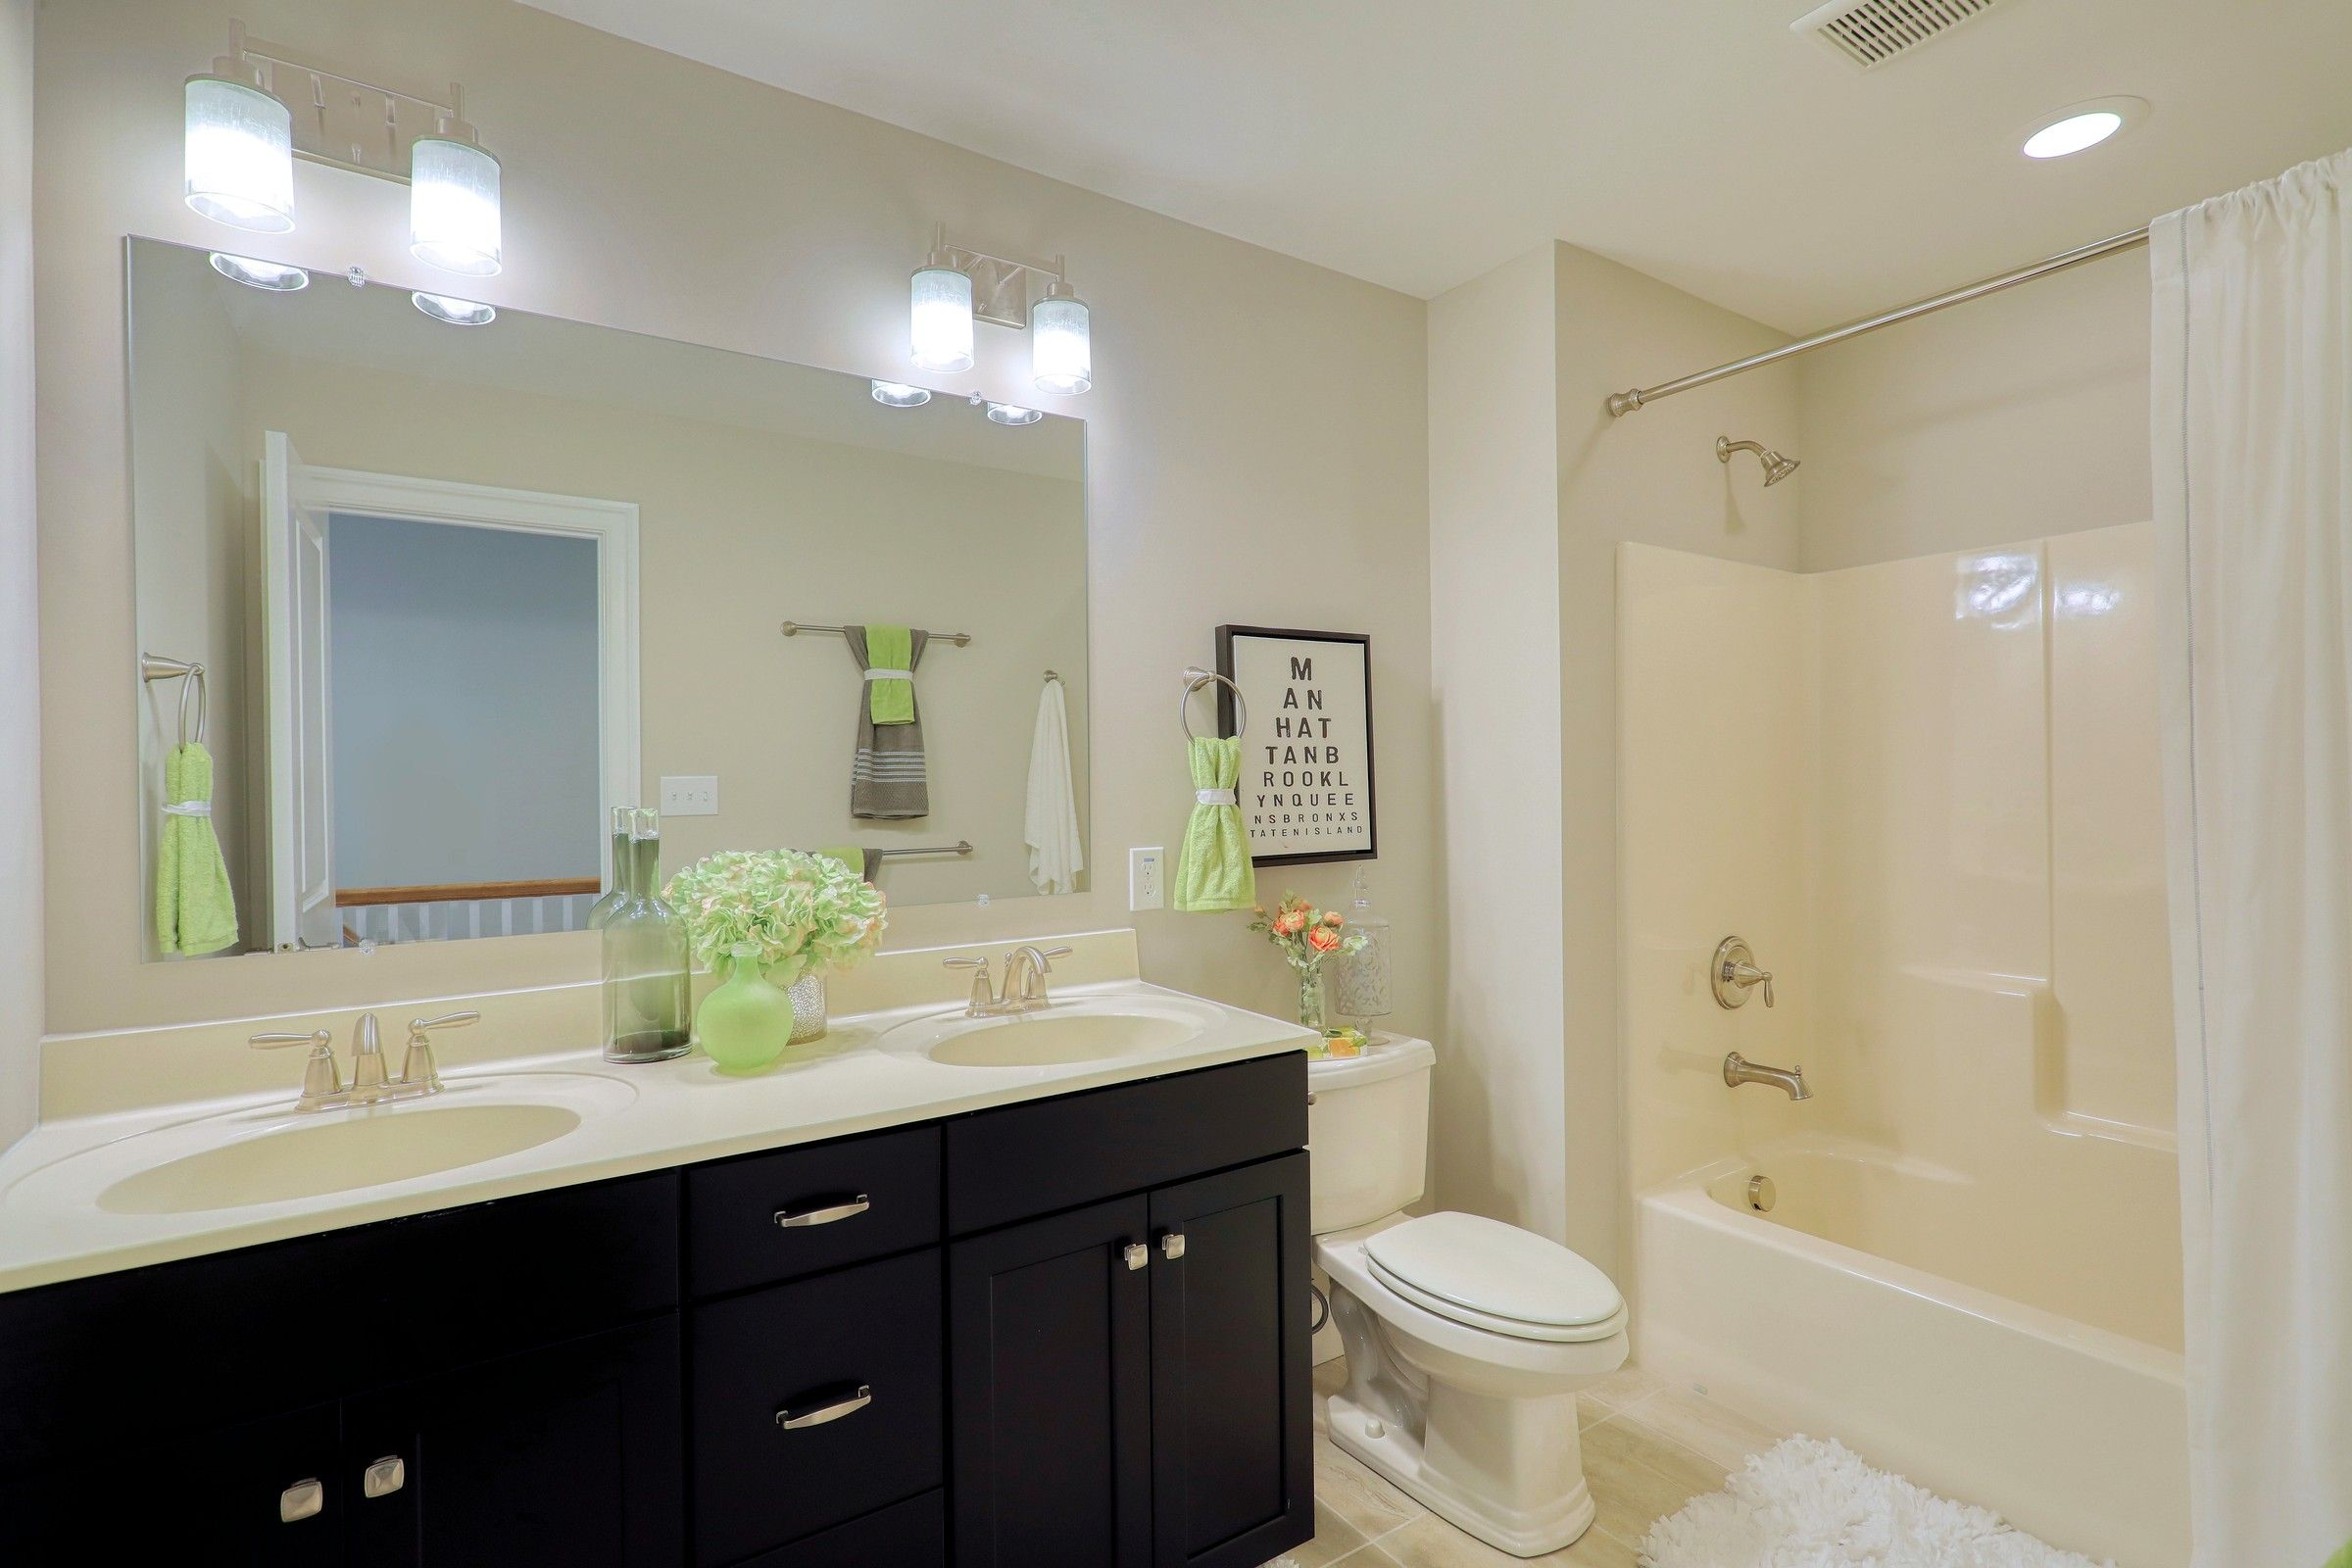 Bathroom featured in the Parker Heritage By Keystone Custom Homes in York, PA